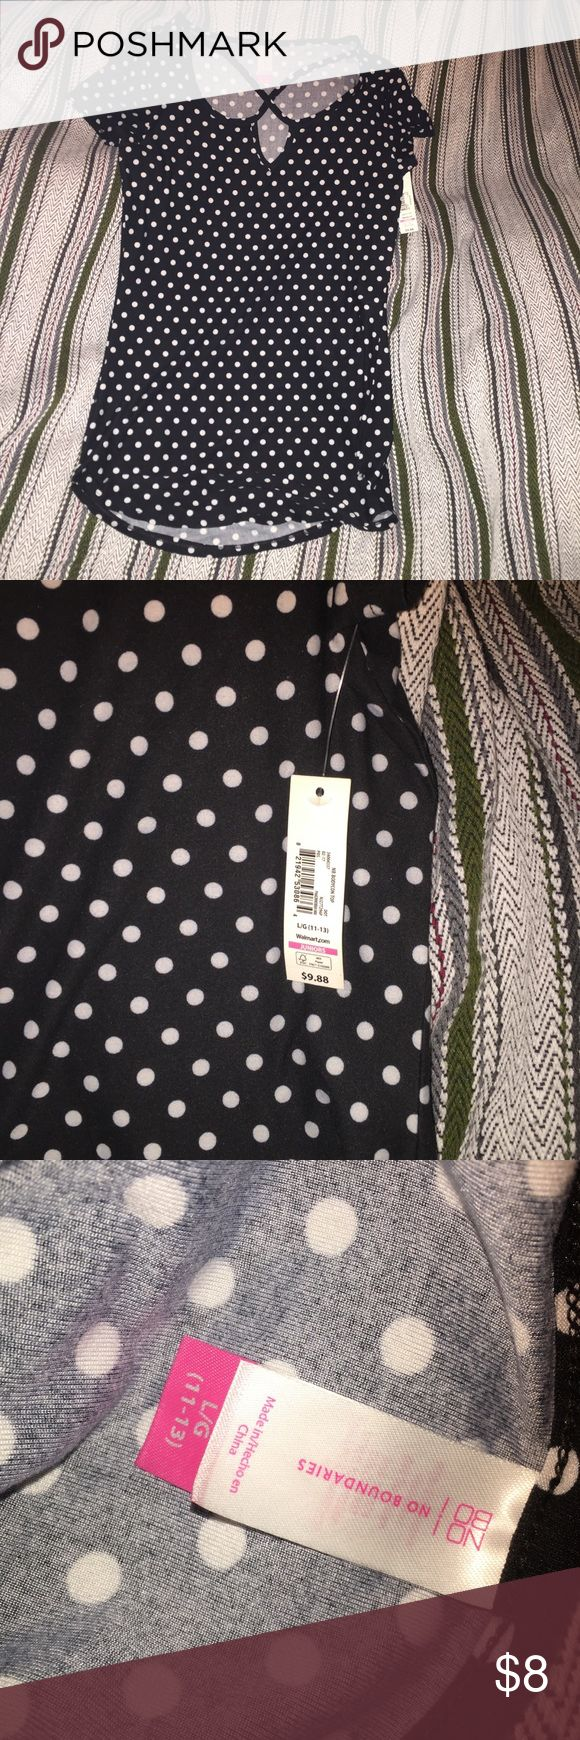 NWT! Black and white polka dot strappy top NWT! Buttery soft material, brand new, no flaws! Don't hesitate to ask questions! Tops Tees - Short Sleeve